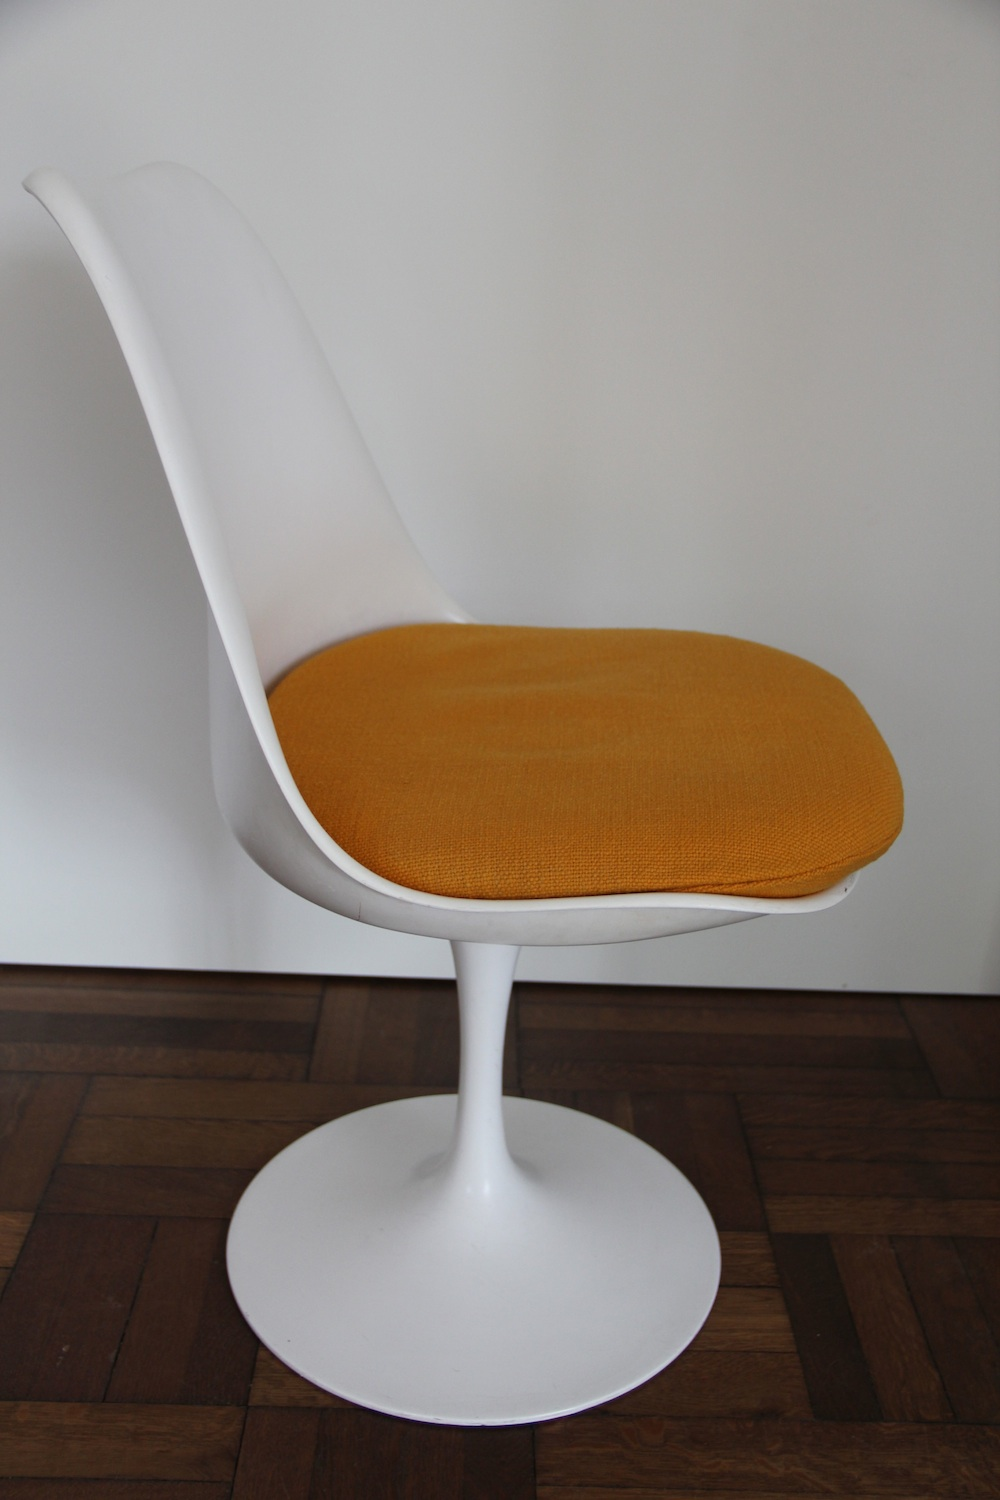 Vintage tulip chair by Saarinen for Knoll